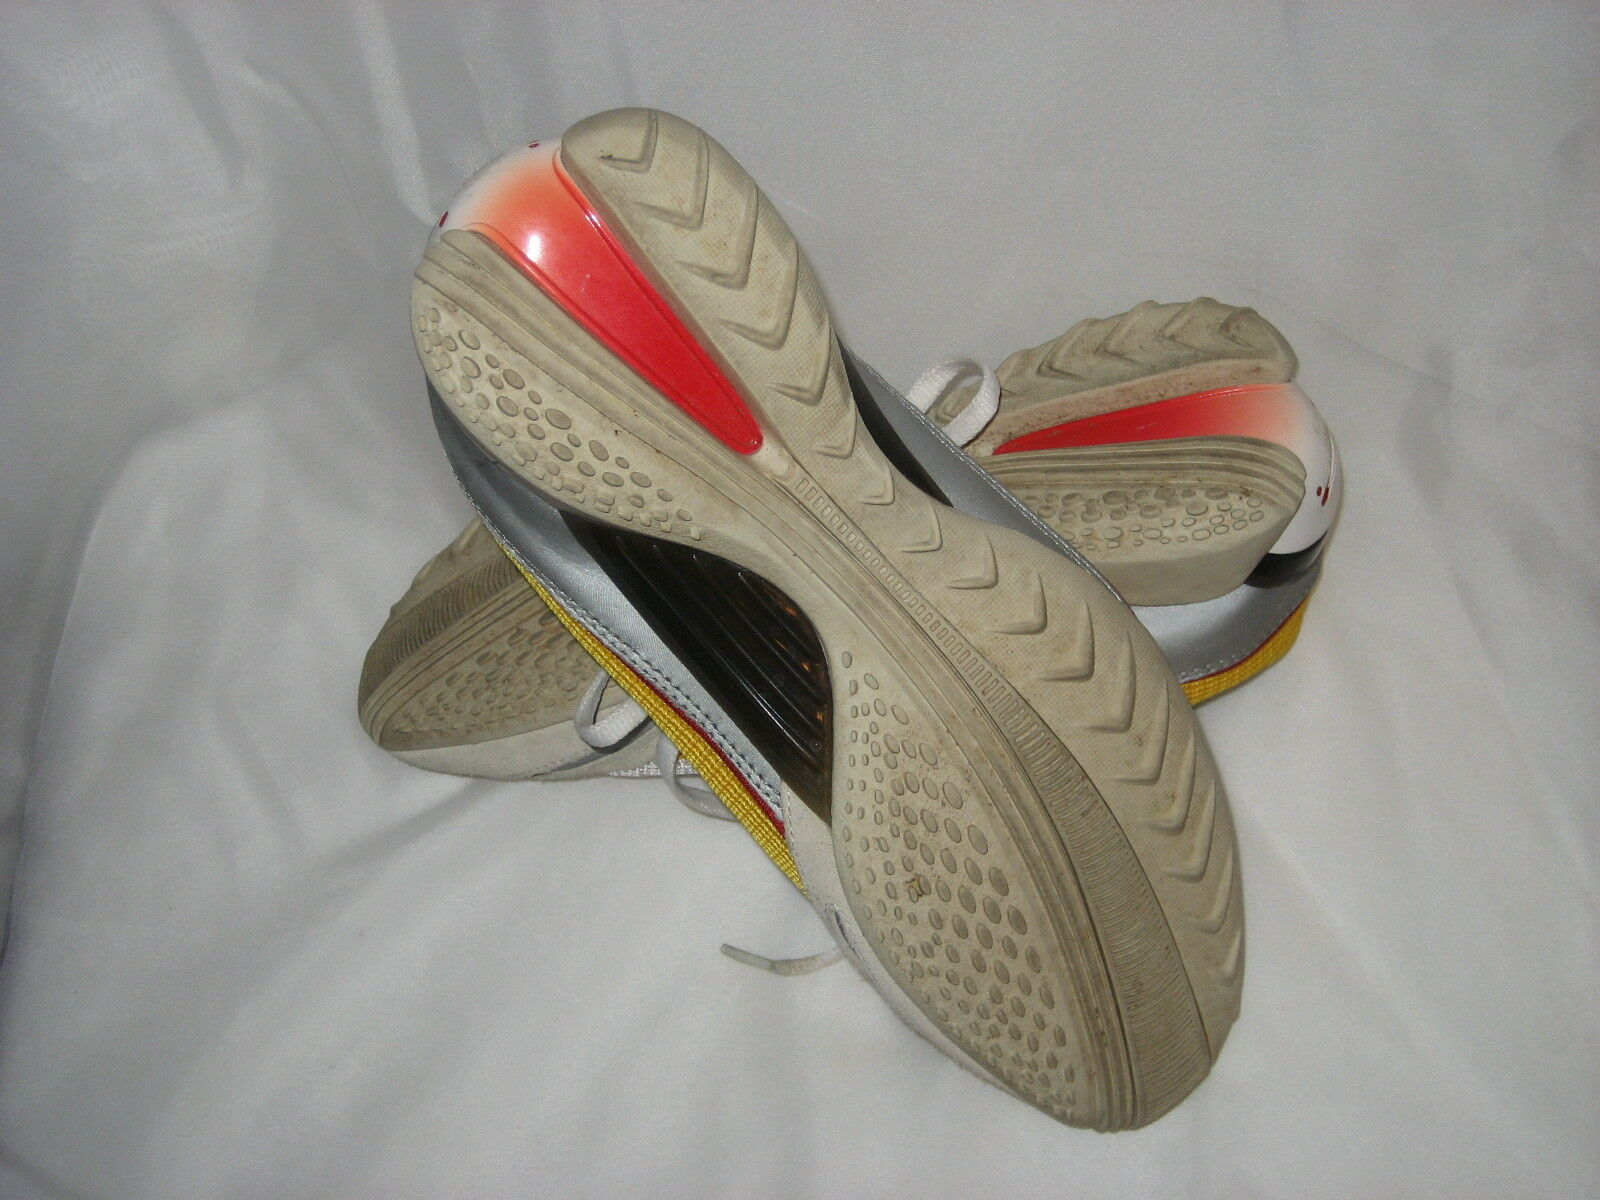 a88bfc712a RUNNING NIKE ZOOM VOMERO 9 100% original pre-owned,Nike Free RN 2017 Running  Shoes, Men's Size 13, Green,